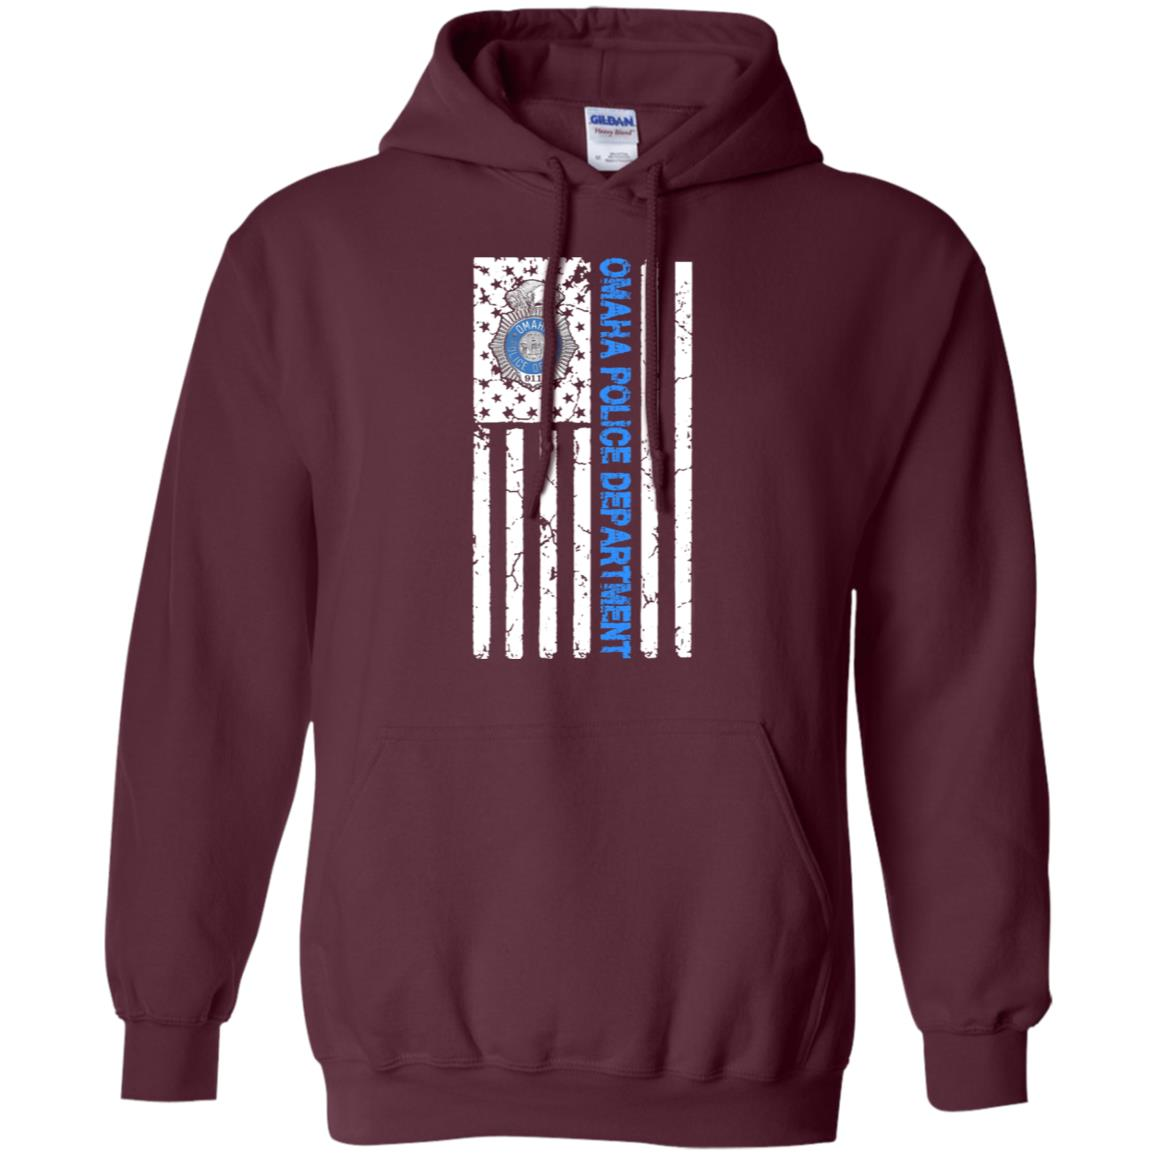 Omaha Police Department T shirts Hoodies, Sweatshirts